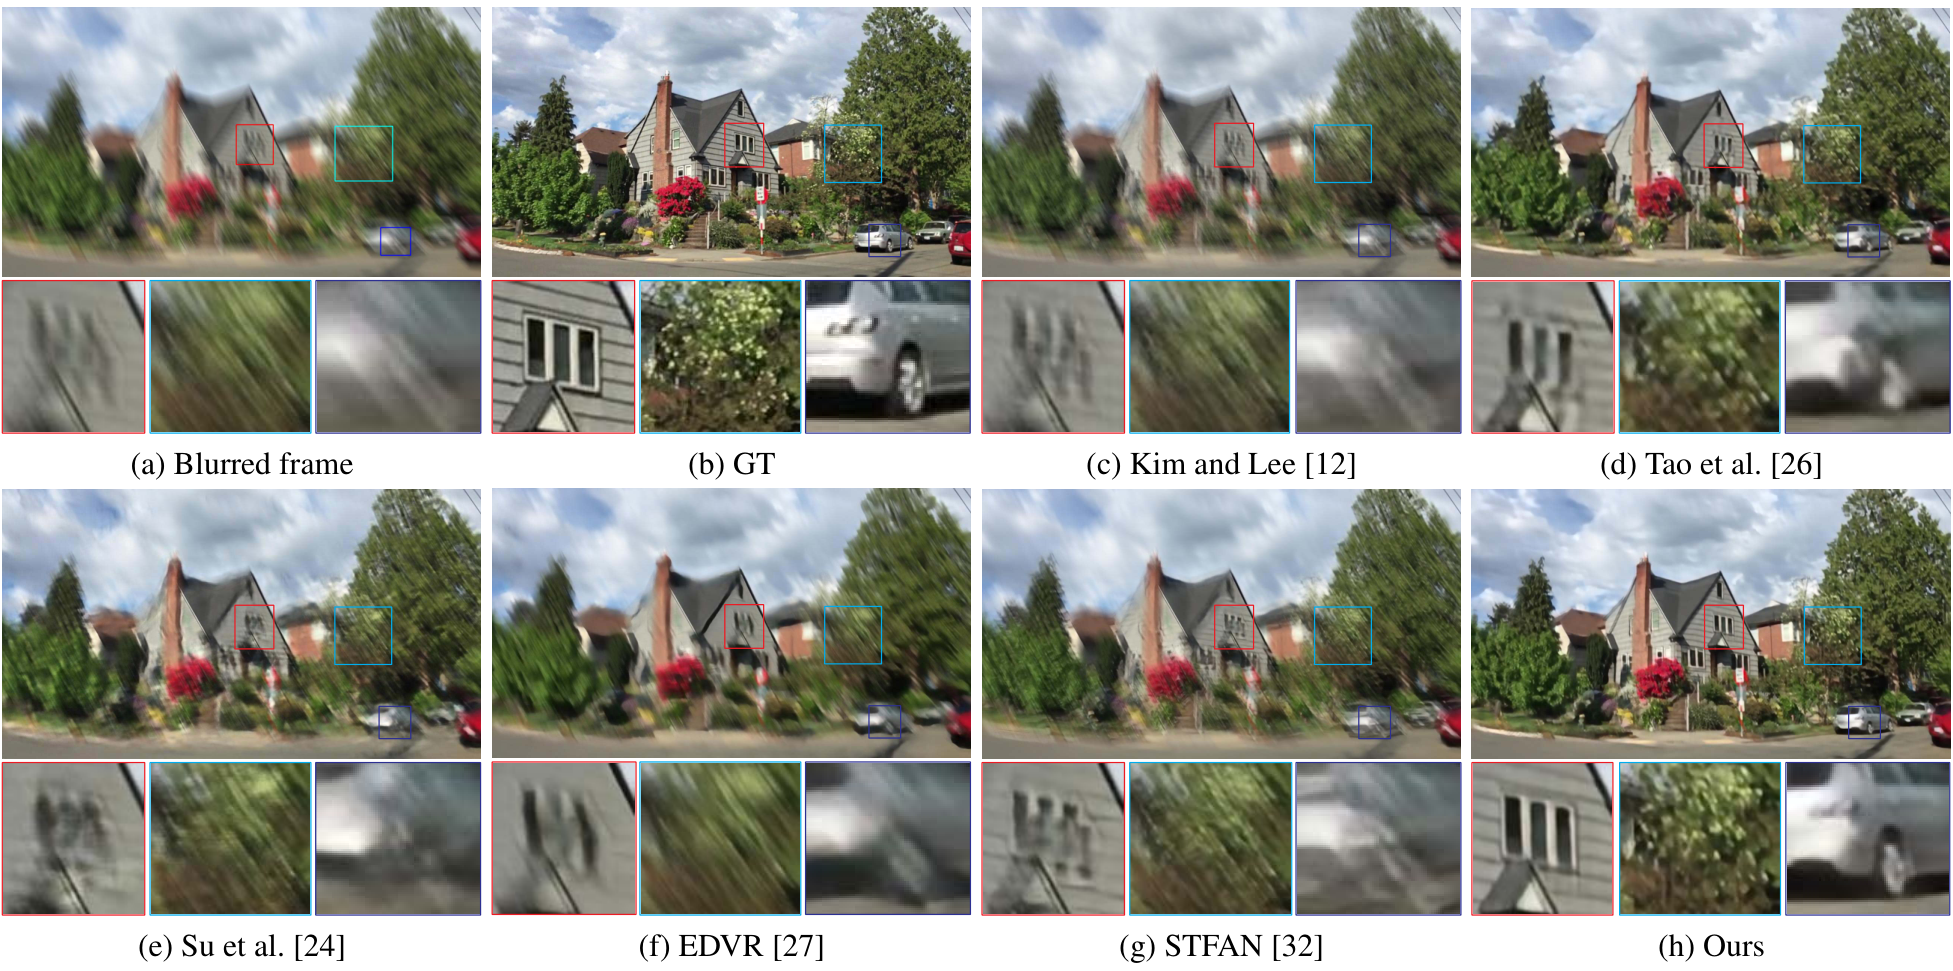 Figure 2. Deblurred results on the test dataset [24].